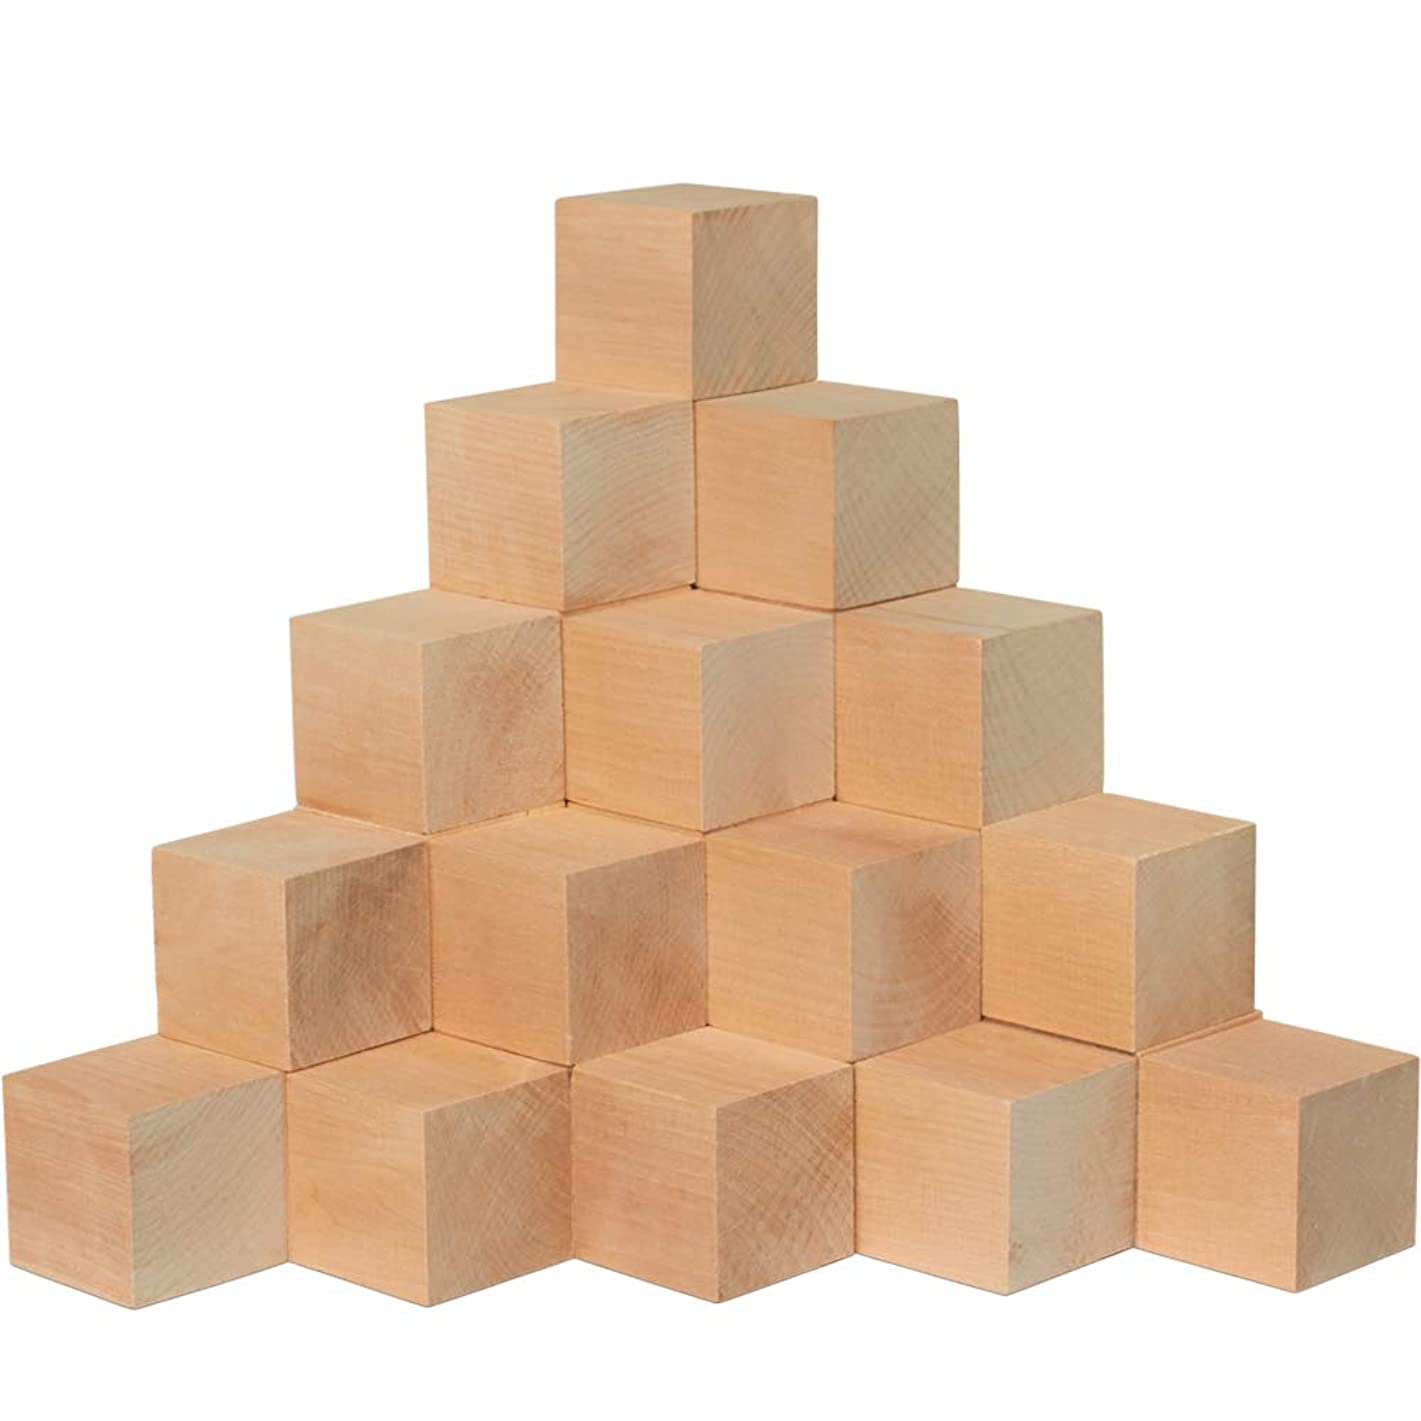 Wood Blocks, 2 Inch Cubes, 24 Pack | Unfinished Wooden Toy Craft Supply Kit for Kids & Adults, DIY Art Projects, ABC Toys | Woodpeckers Crafts